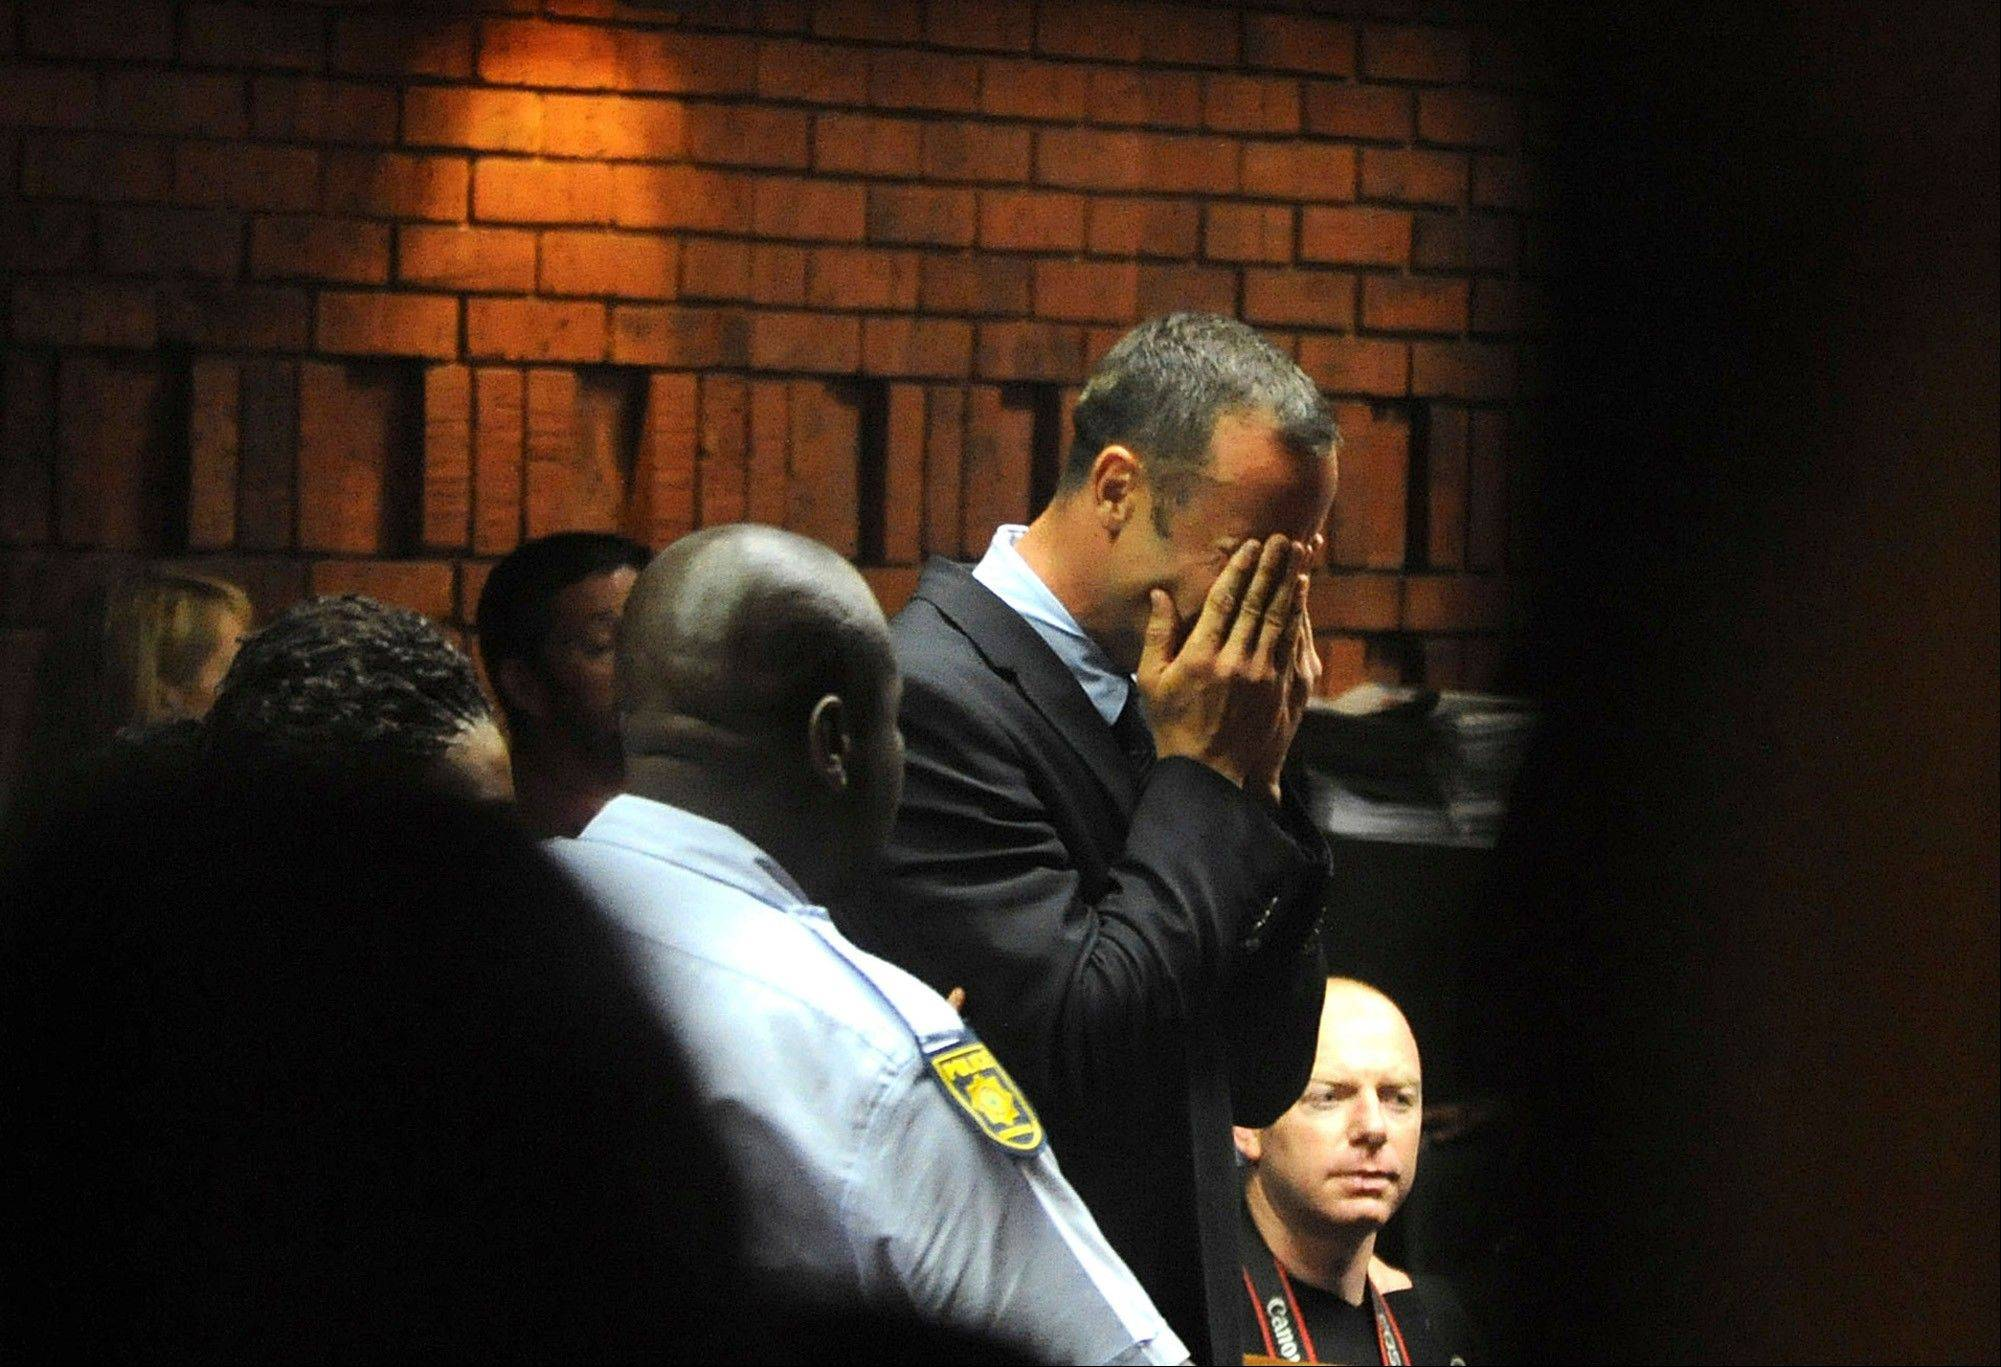 Athlete Oscar Pistorius weeps in court in Pretoria, South Africa, Friday, Feb 15, 2013, at his bail hearing in the murder case of his girlfriend Reeva Steenkamp. Oscar Pistorius arrived at a courthouse Friday, for his bail hearing in the murder case of his girlfriend as South Africans braced themselves for the latest development in a story that has stunned the country.